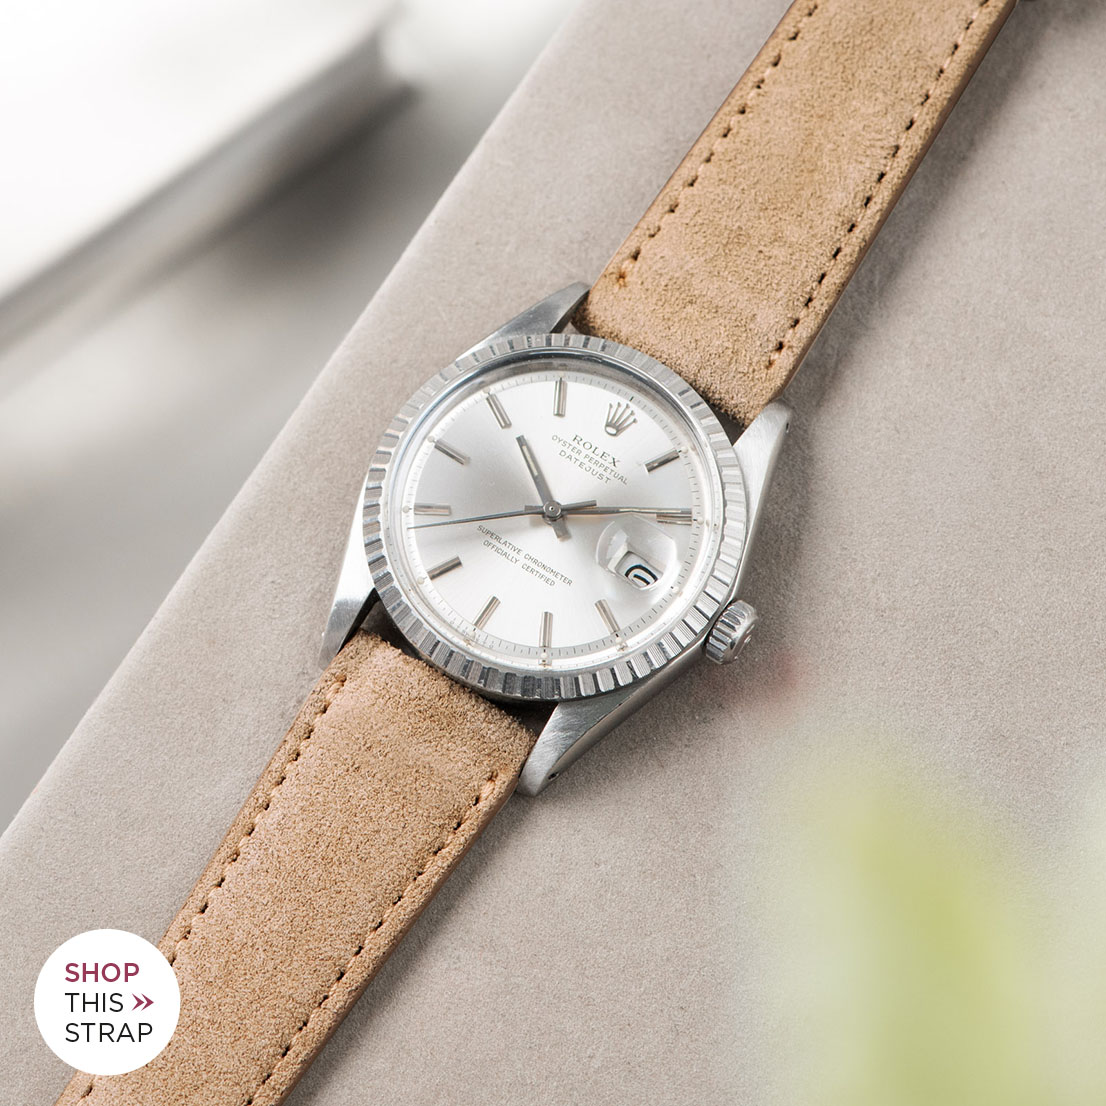 Bulang and sons_Strap Guide_Rolex Datejust Silverdial 1601 1603 1600 1630_REFINED LIGHT BROWN SUEDE WATCH STRAP